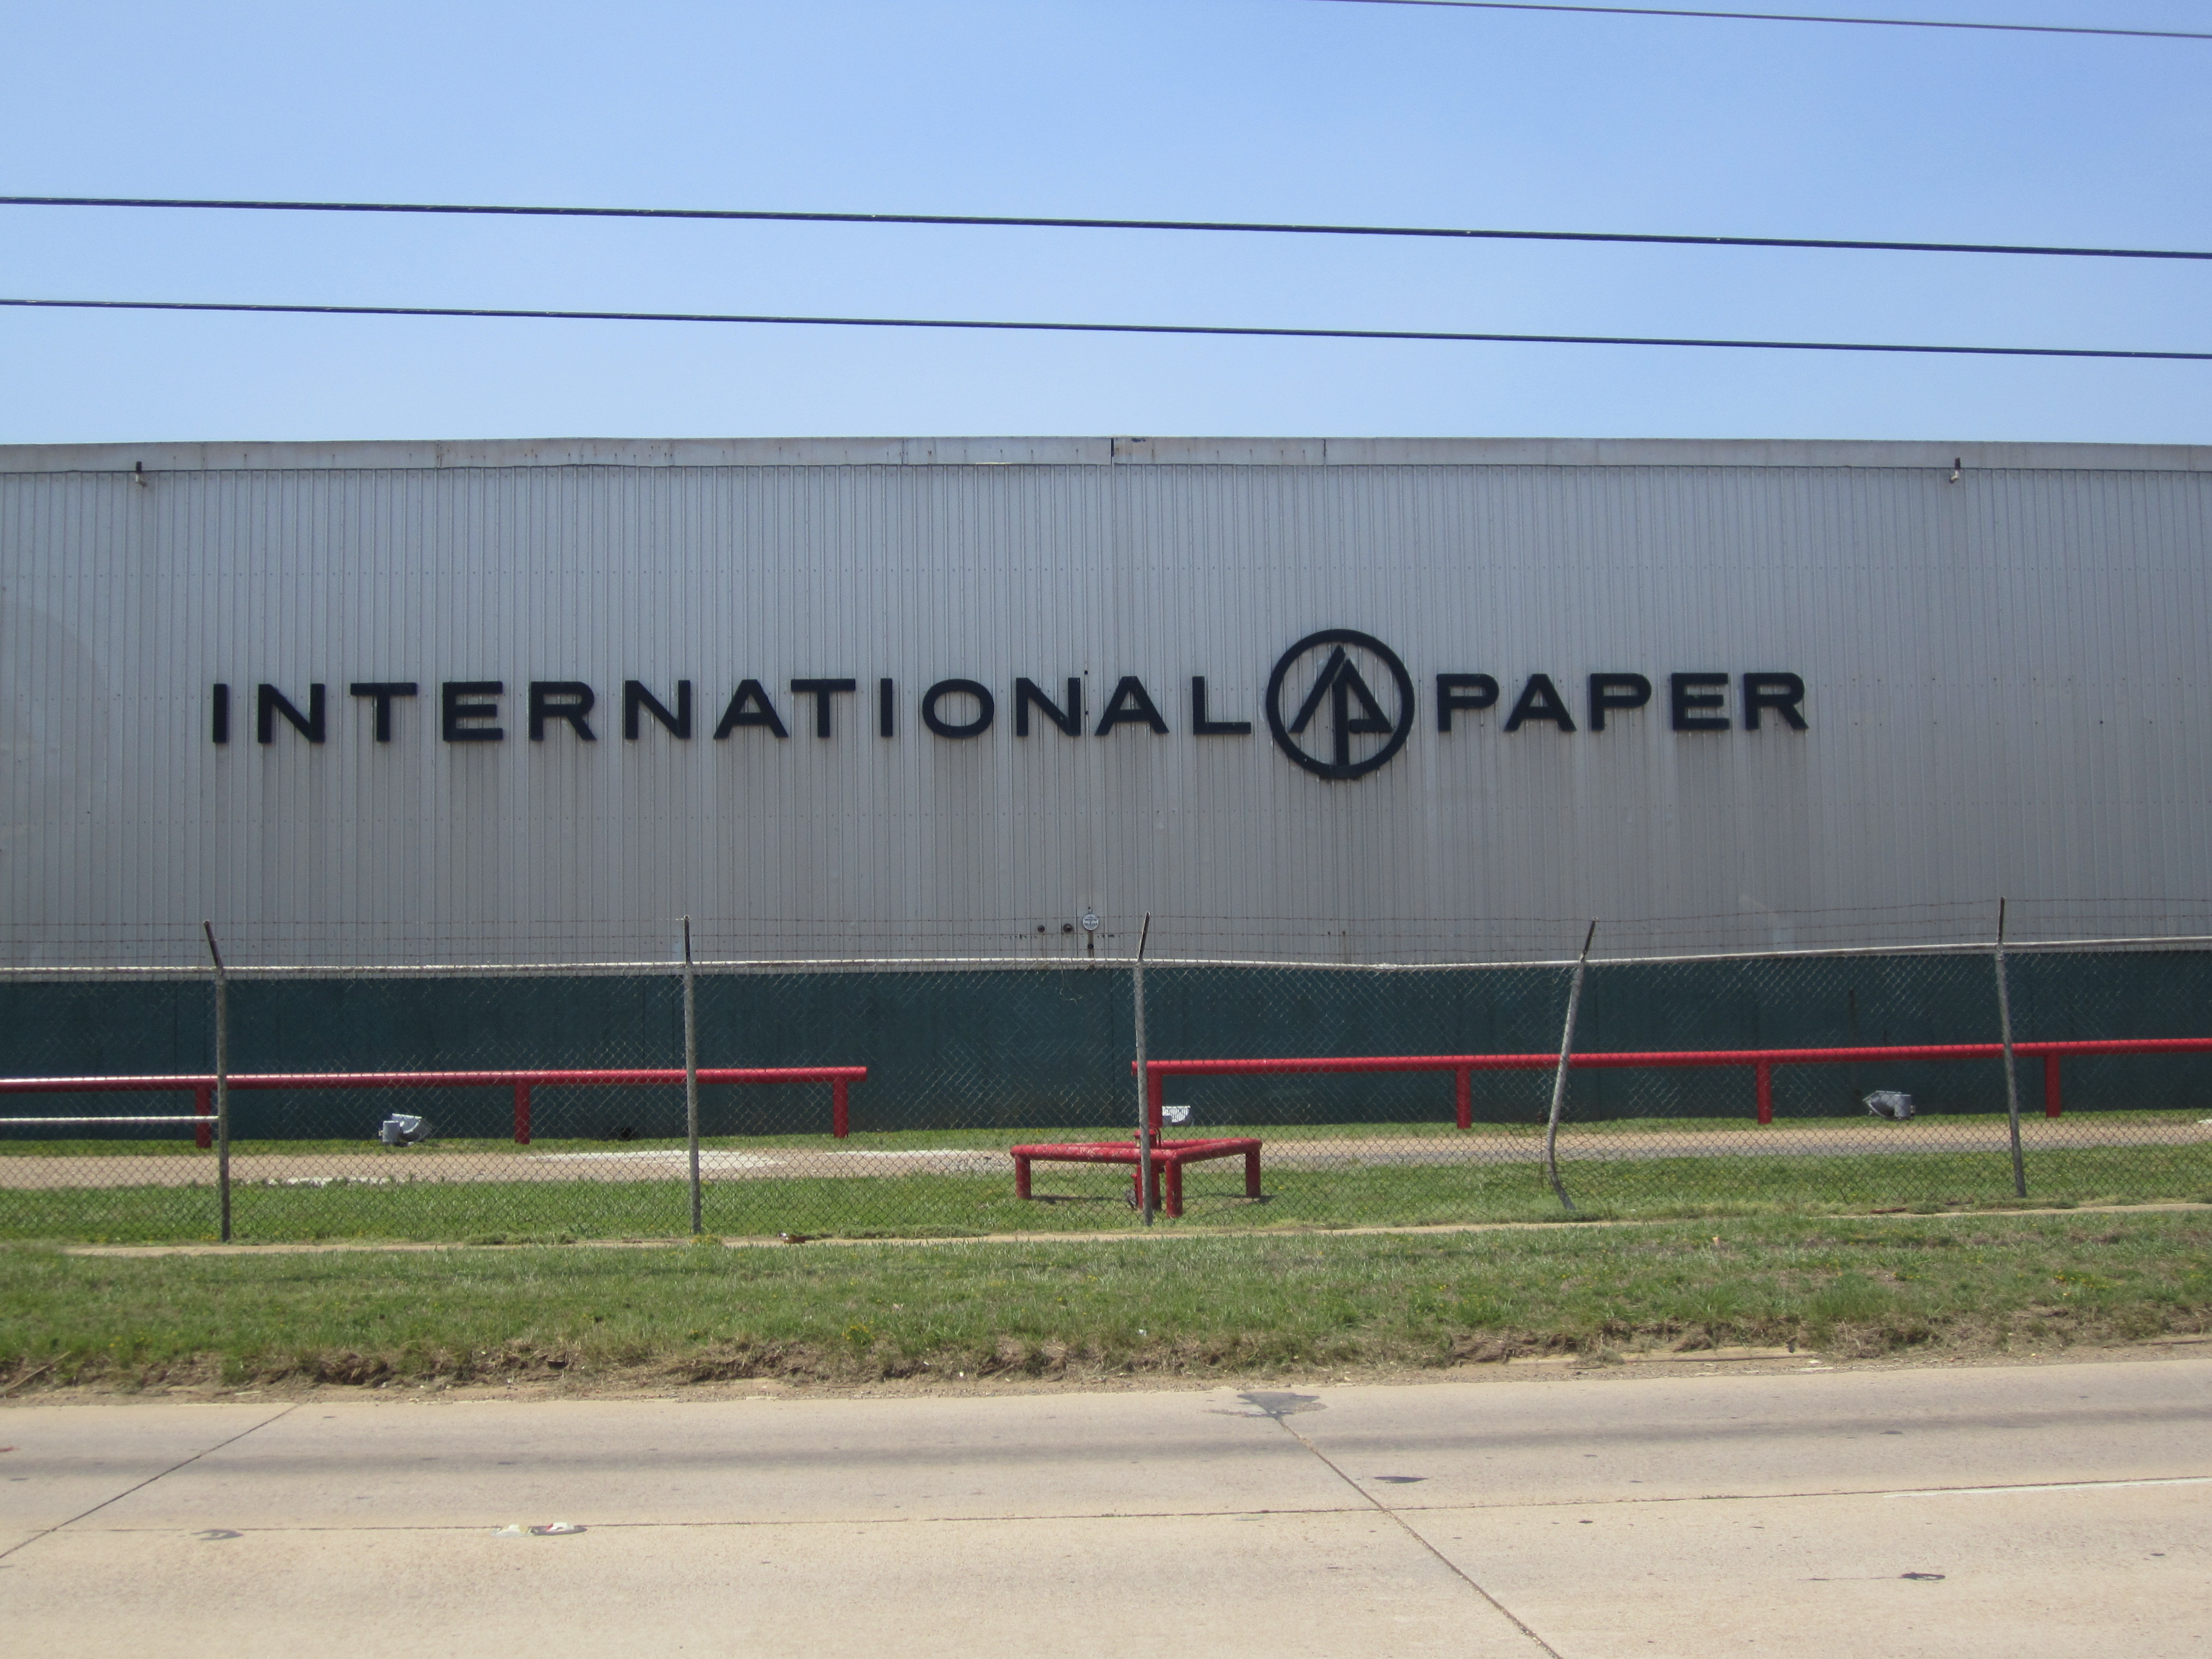 international papers 417 international paper jobs available on indeedcom apply to laborer, entry  level production operator, production scheduler and more.